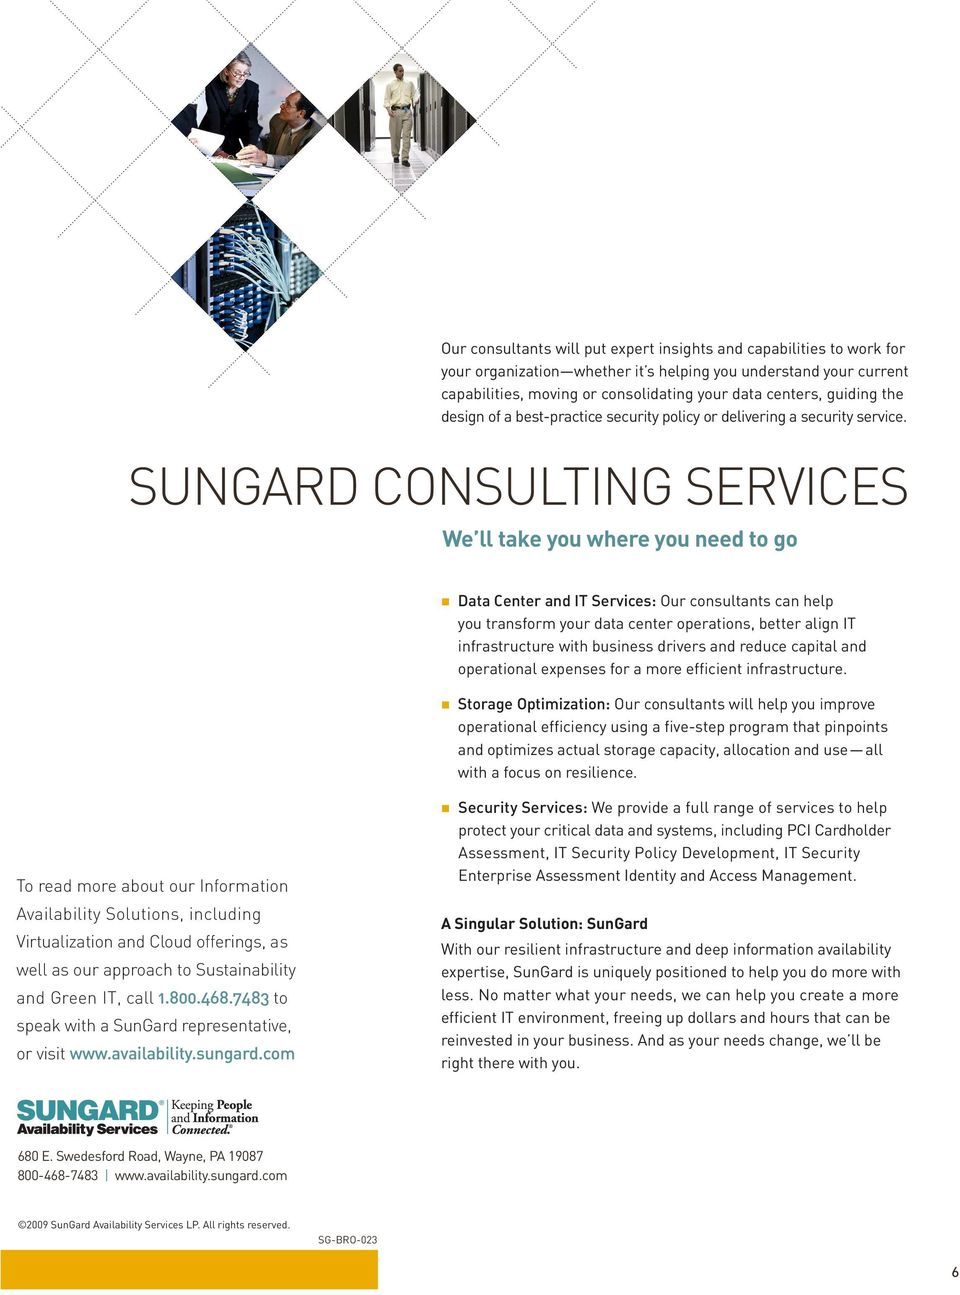 SUNGARD CONSULTING SERVICES We ll take you where you need to go Data Center and IT Services: Our consultants can help you transform your data center operations, better align IT infrastructure with